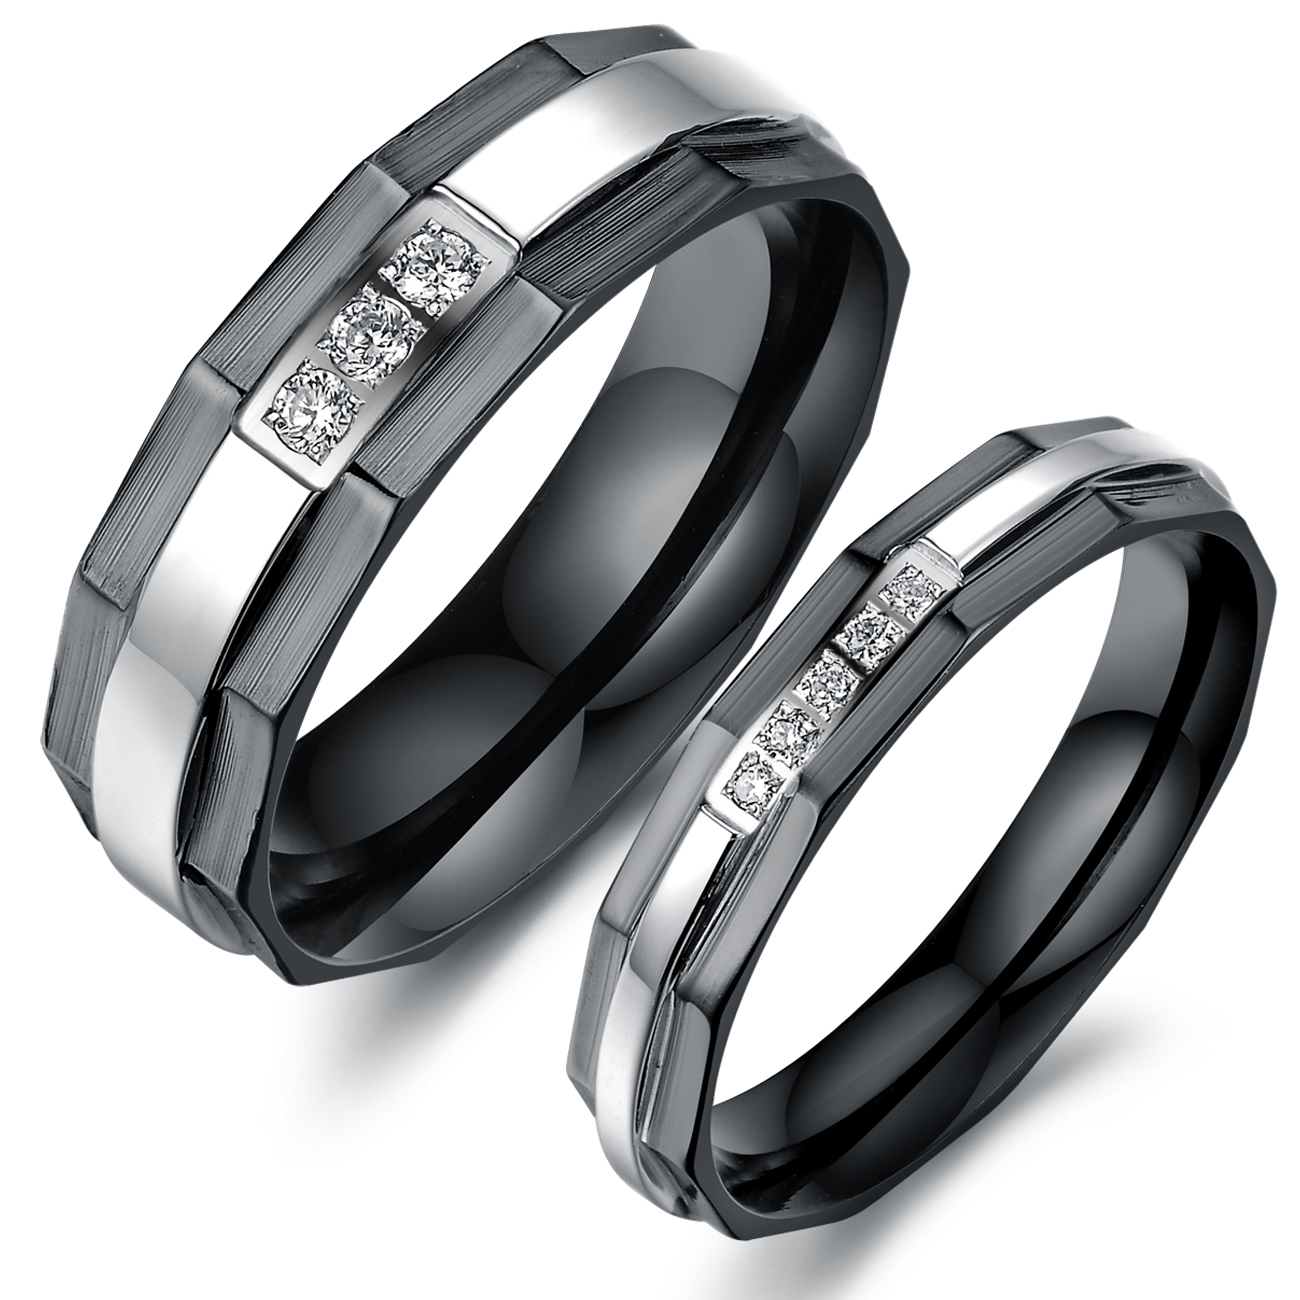 mens black tungsten wedding bands black wedding bands Even you can get the mens black tungsten wedding bands from online marketplace nowadays